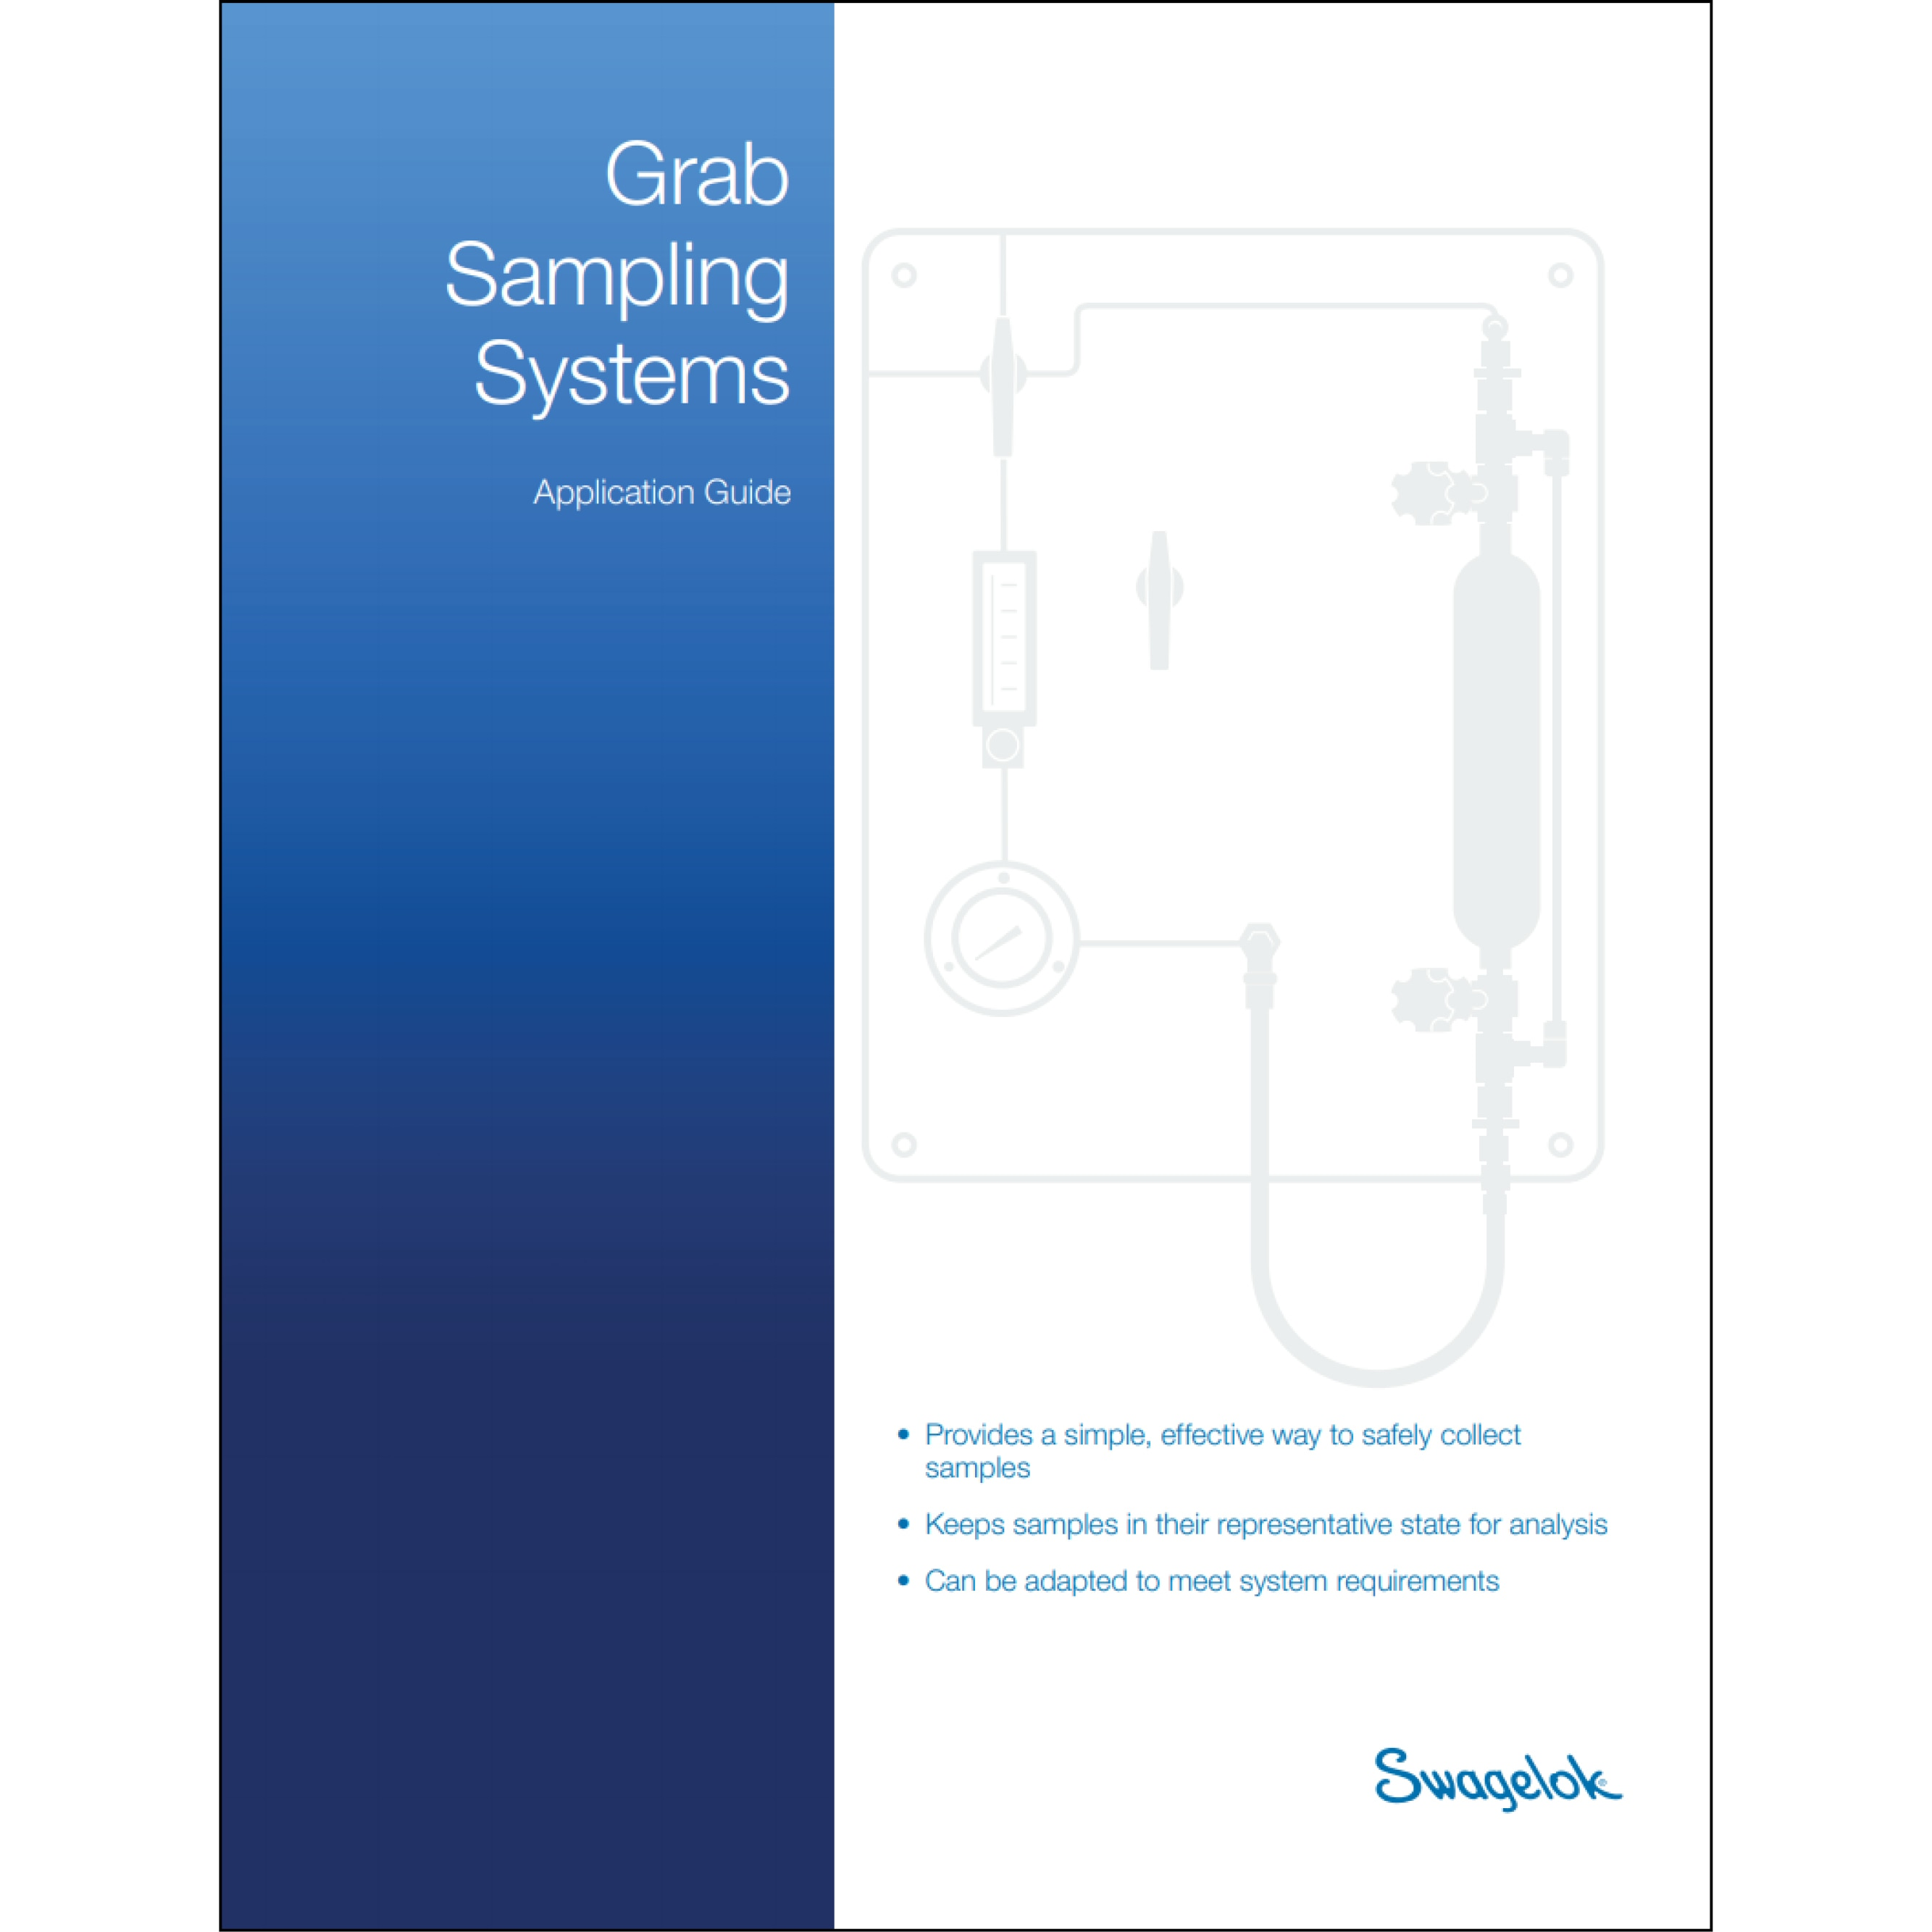 Grab Sampling System Applications Guide